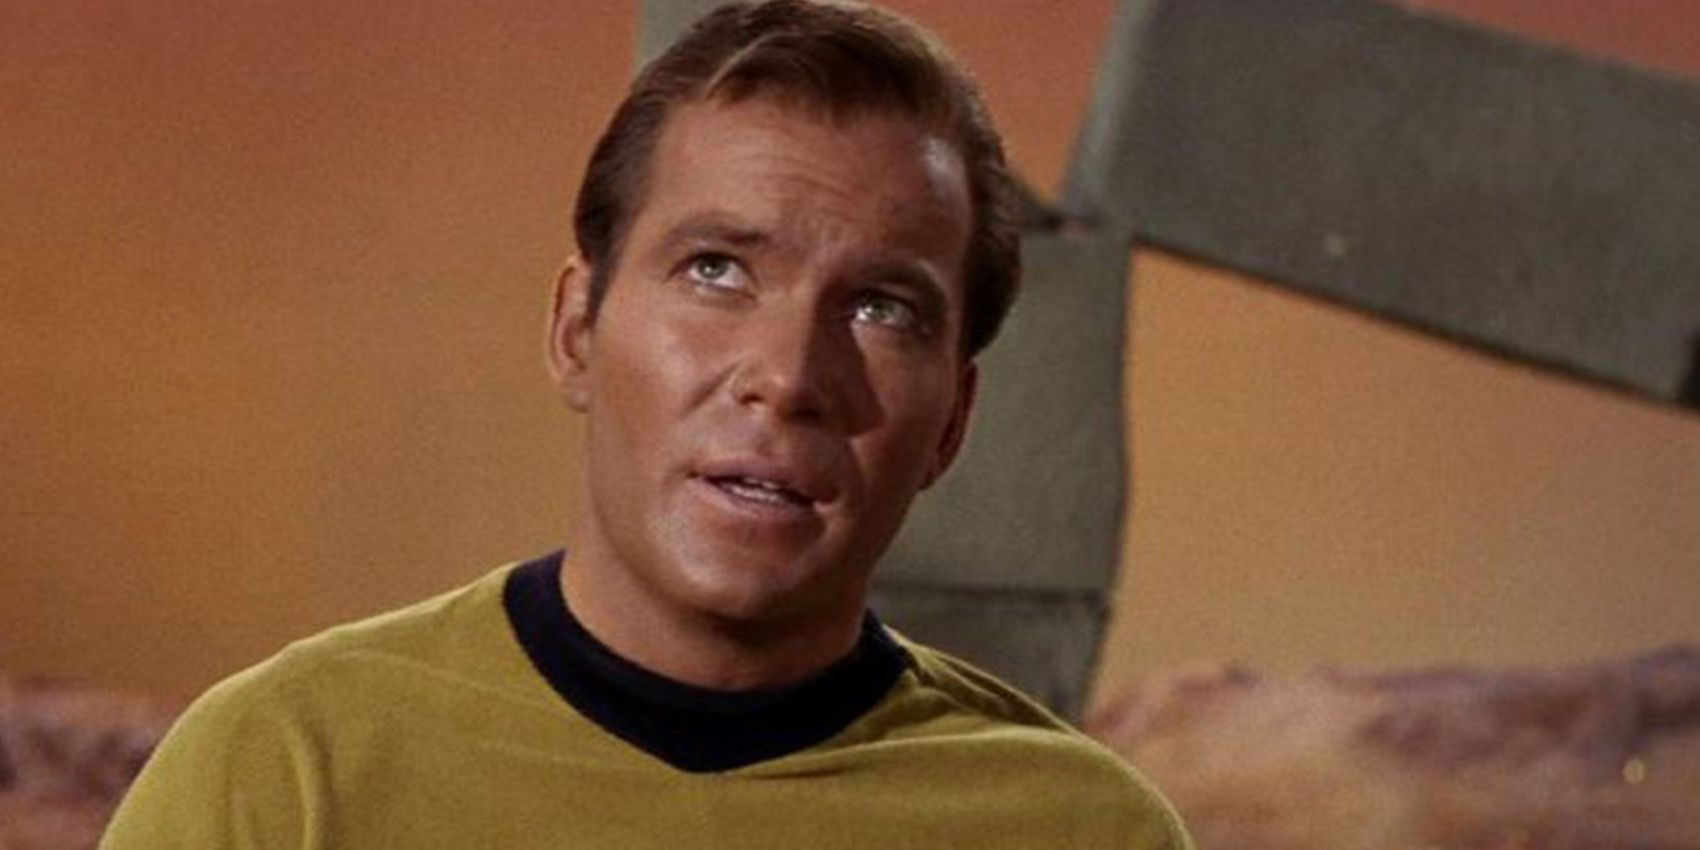 Keep it gay by william shatner